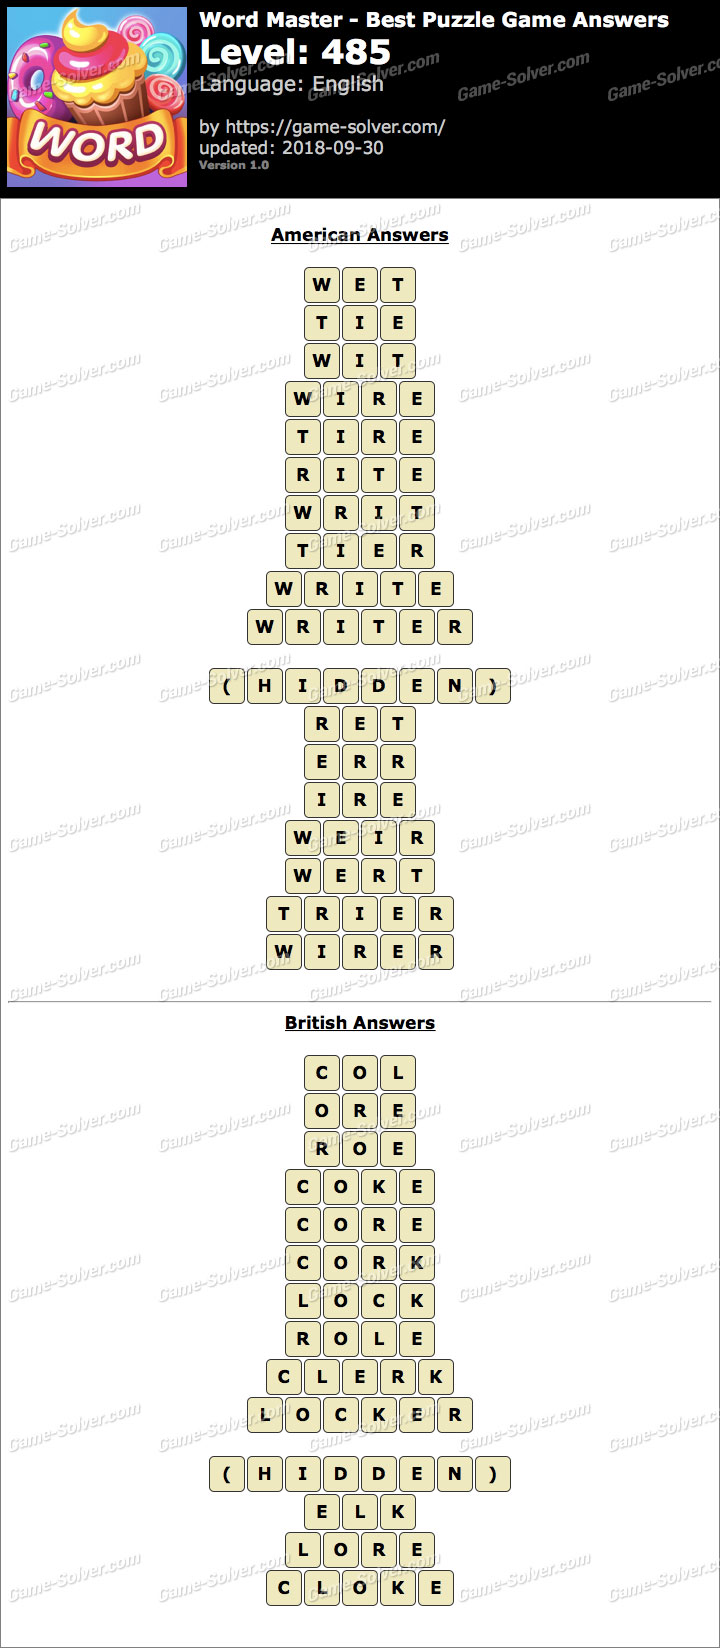 Word Master-Best Puzzle Game Level 485 Answers